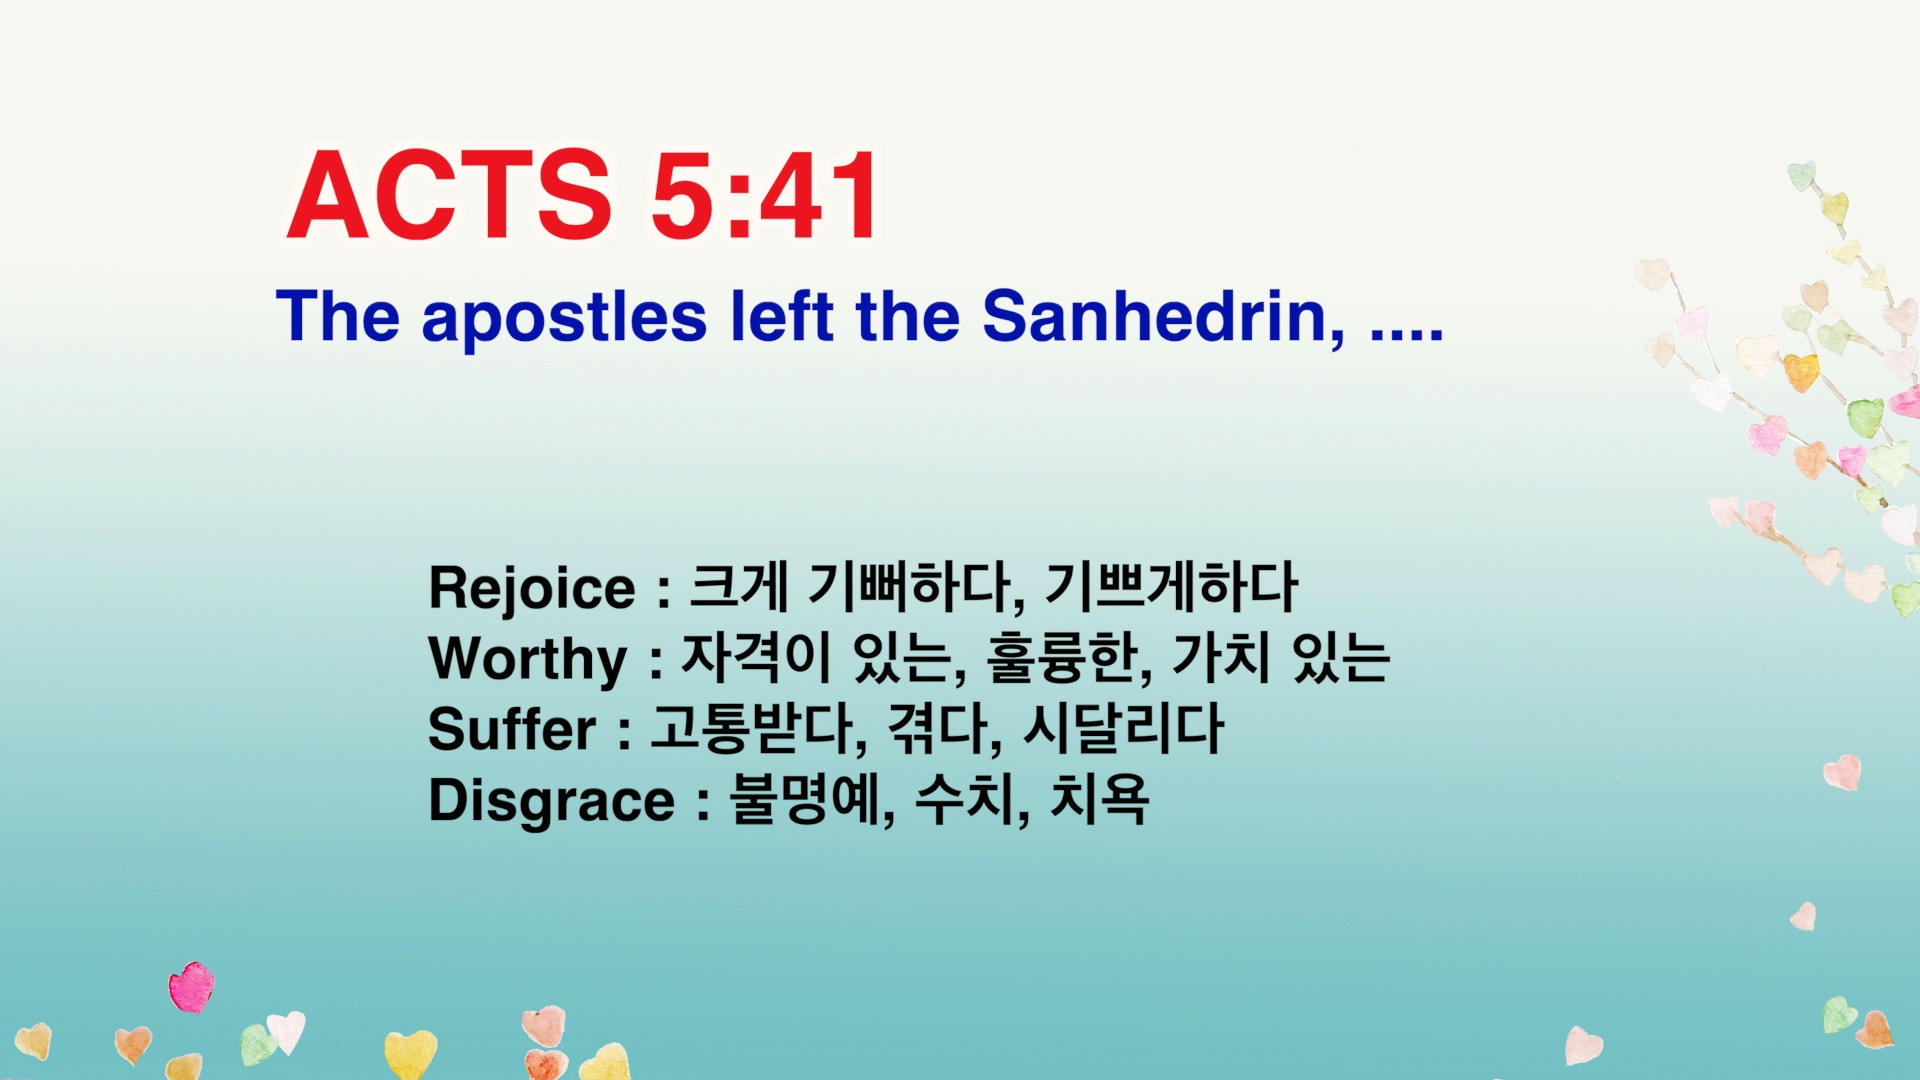 Leena's Bible English-Acts Chap. 5, Ver.41